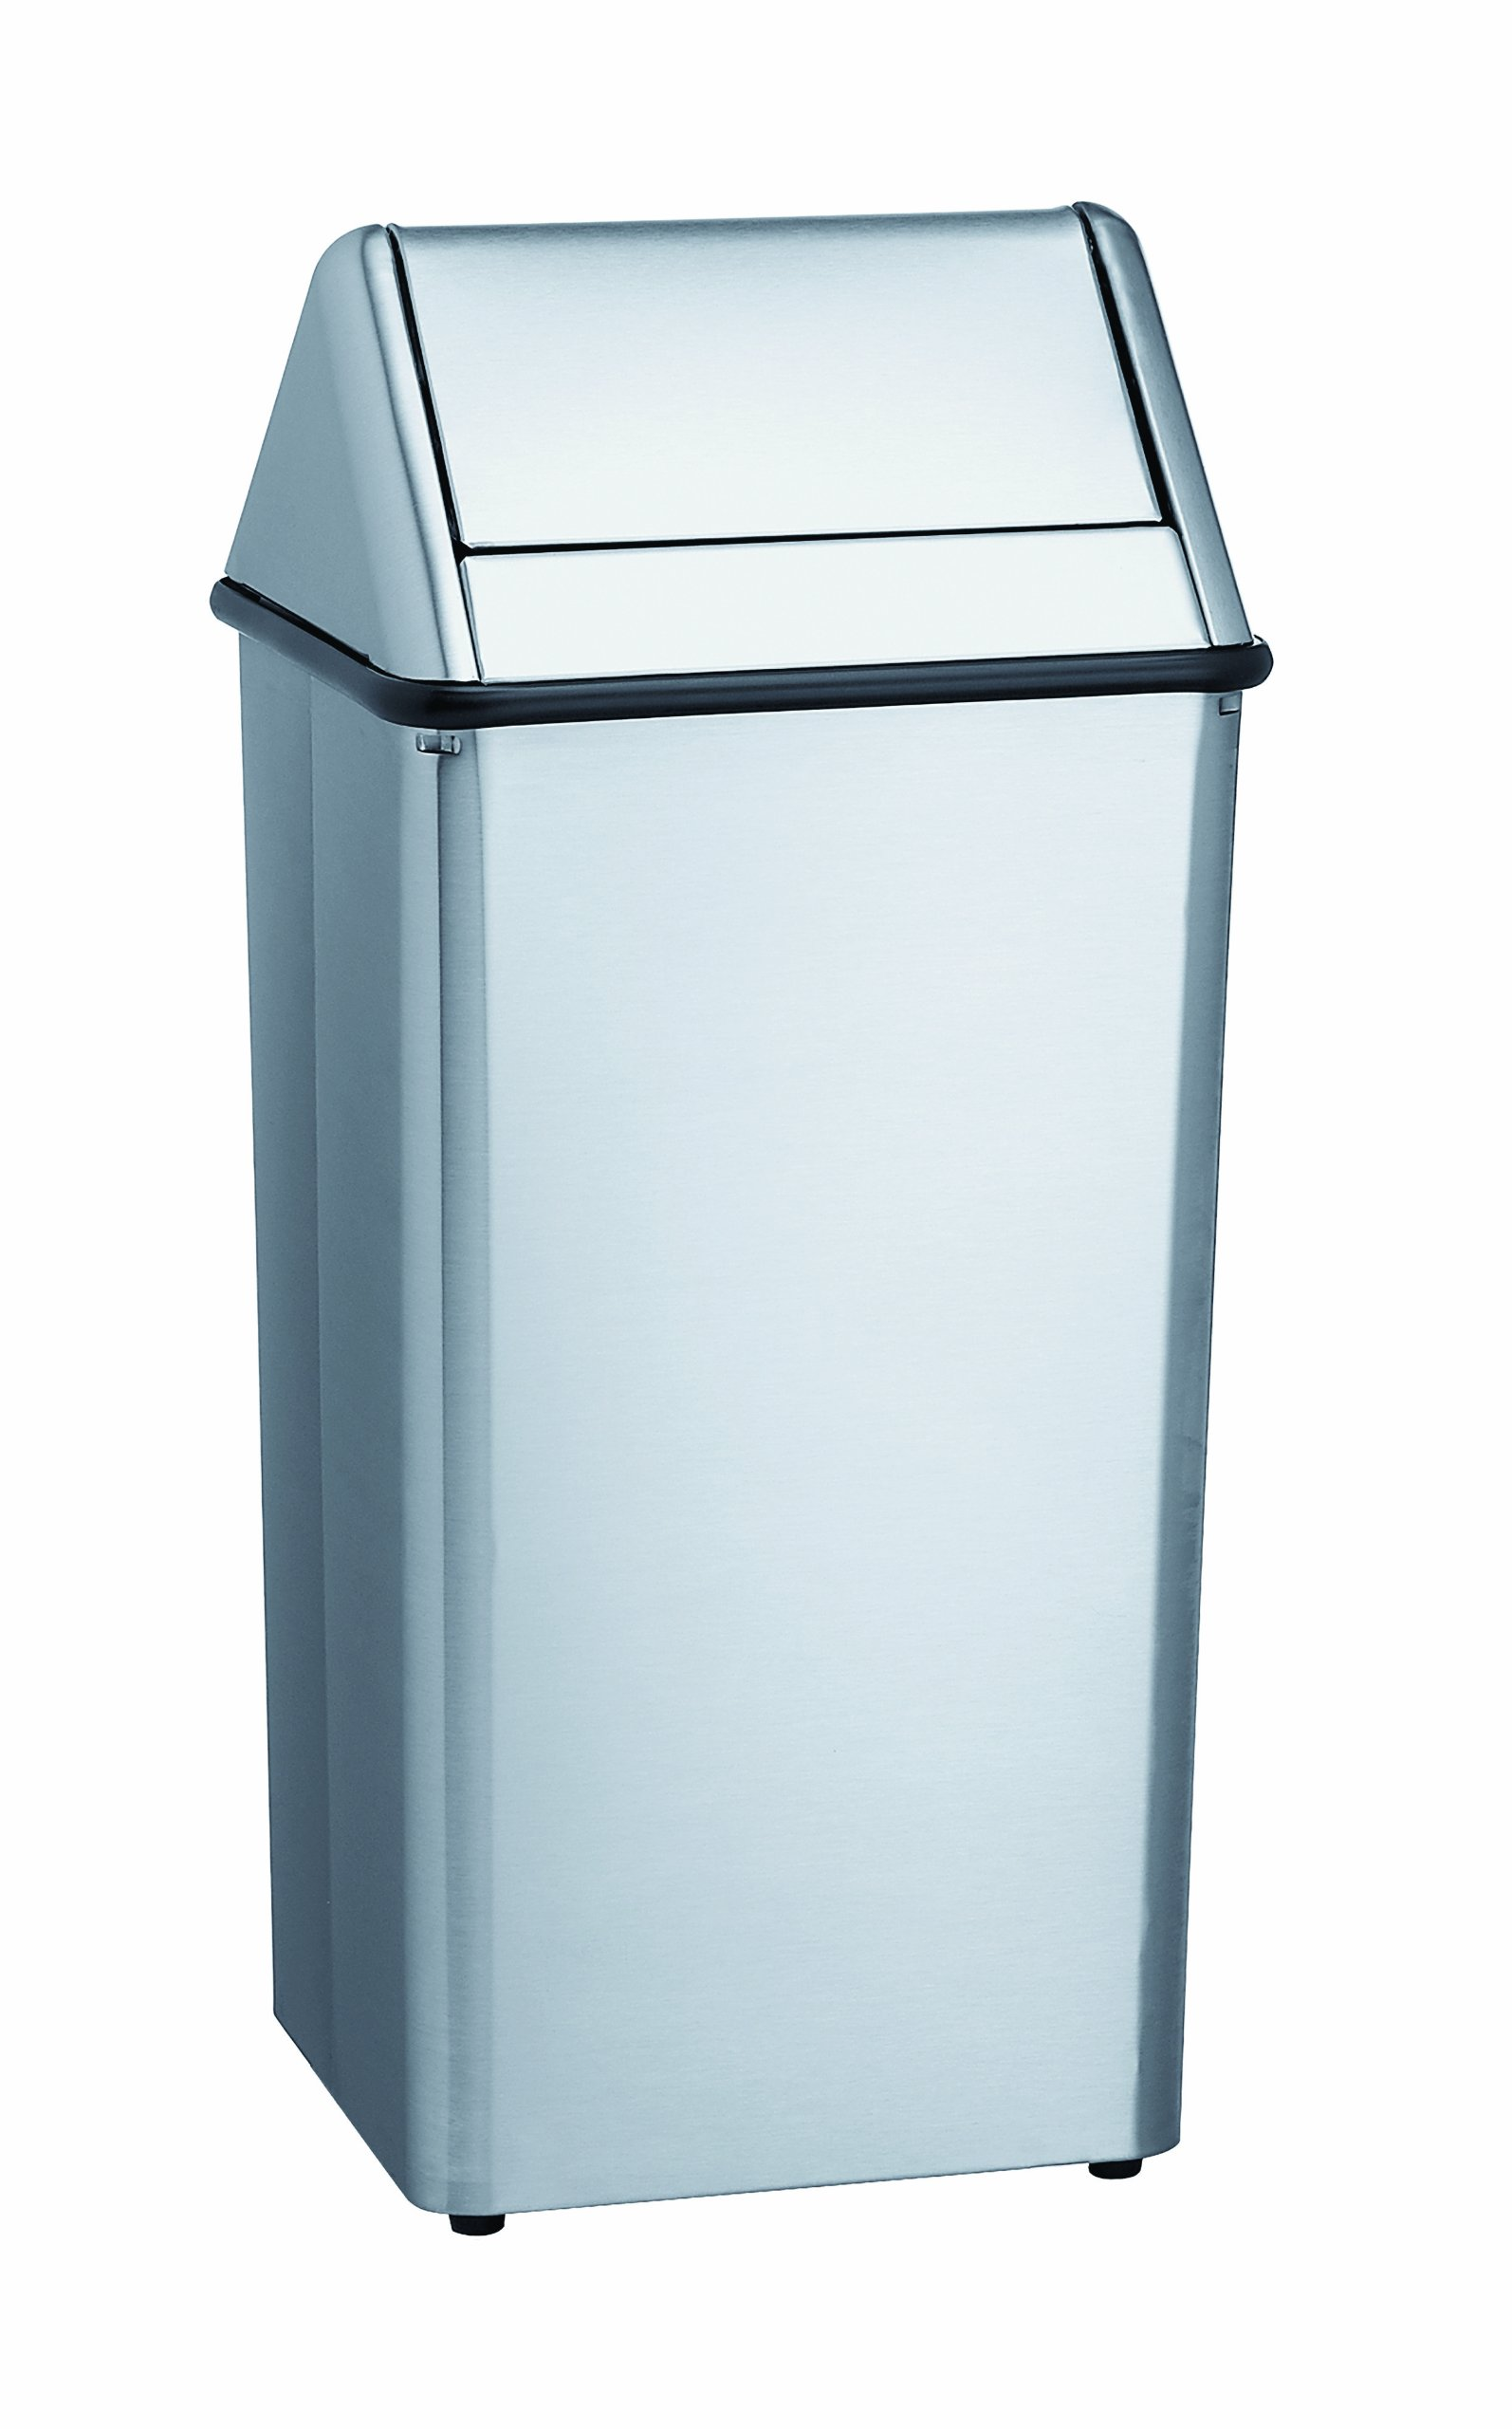 Bradley 377-000000 Stainless Steel Free-Standing Waste Receptacle, 13 Gallon Capacity, 13'' Width x 29'' Height x 13'' Depth